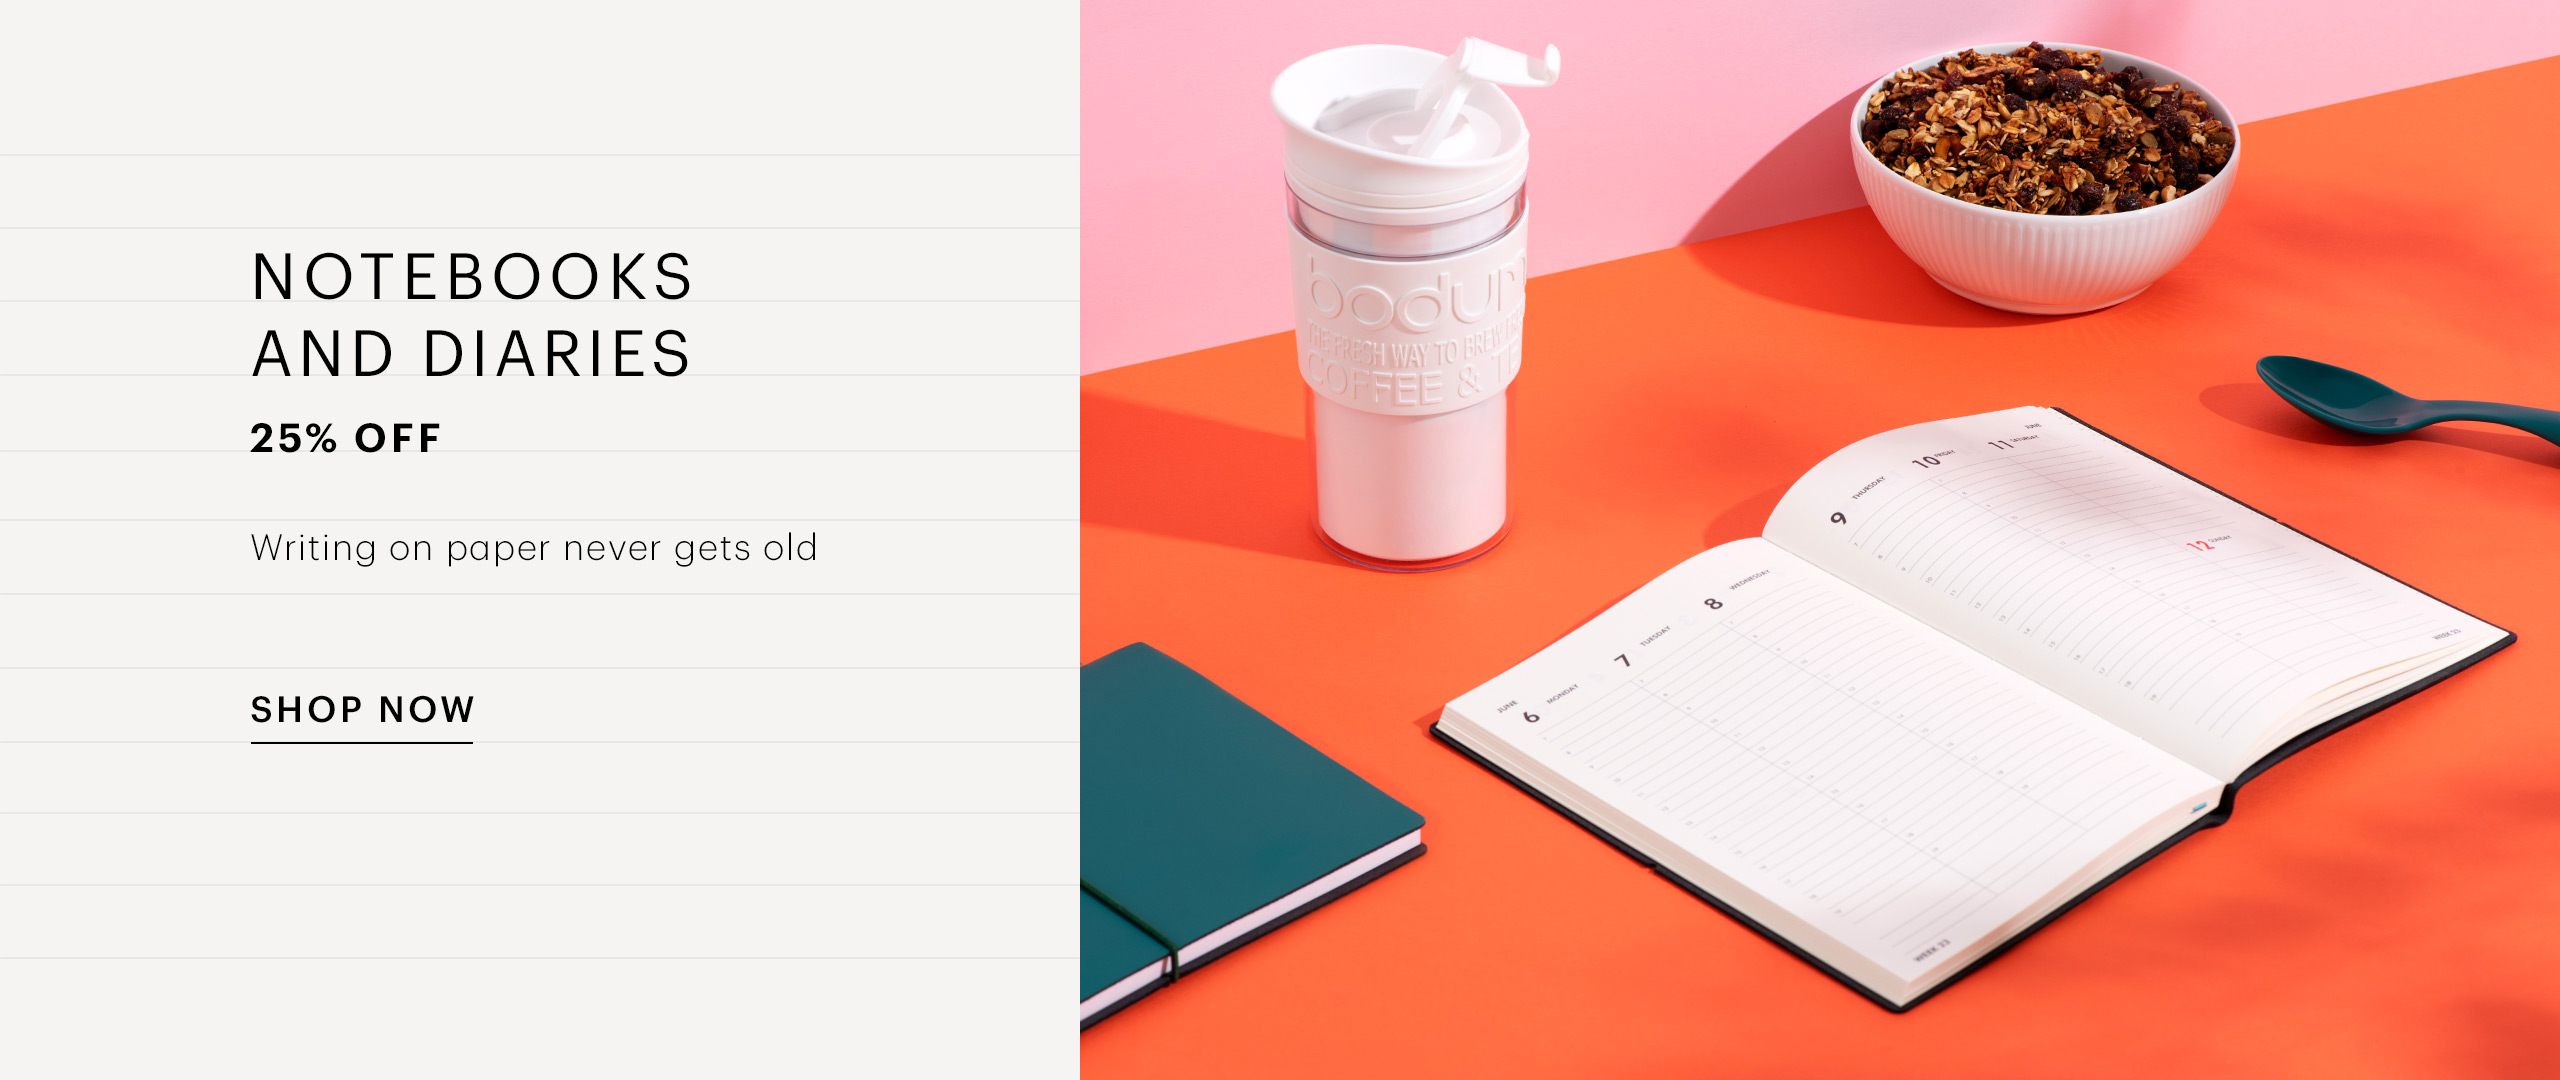 [OR] Notebooks and Diaries EN